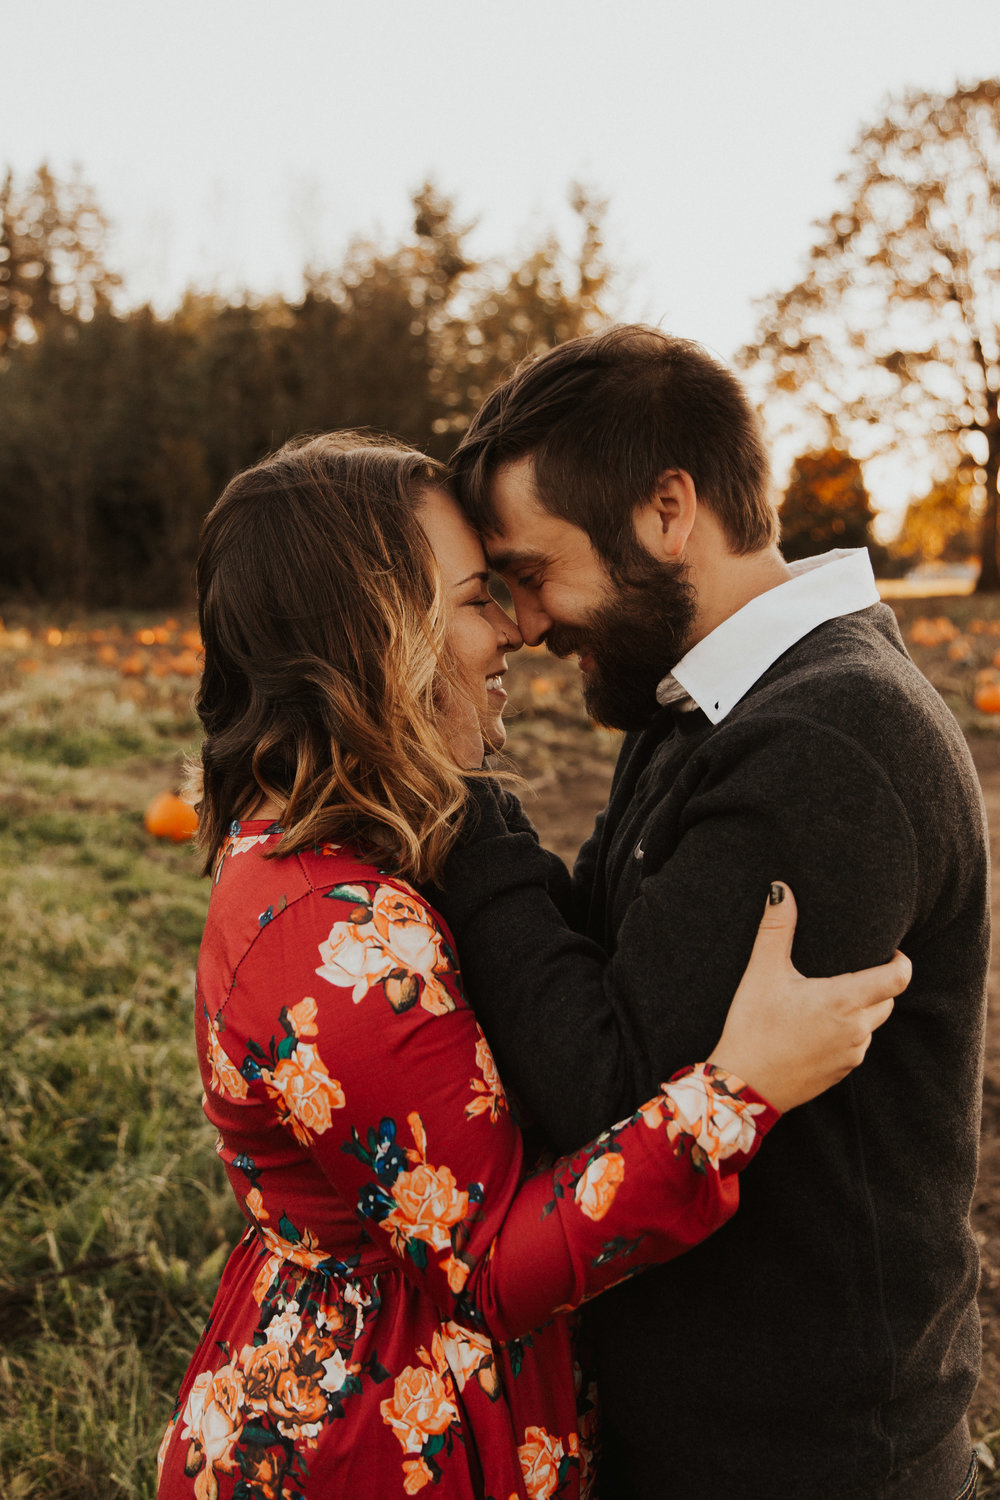 August-Muse-images-taylor-kelsey-vancouver-pumpkin-patch-washington-engagement-10.jpg